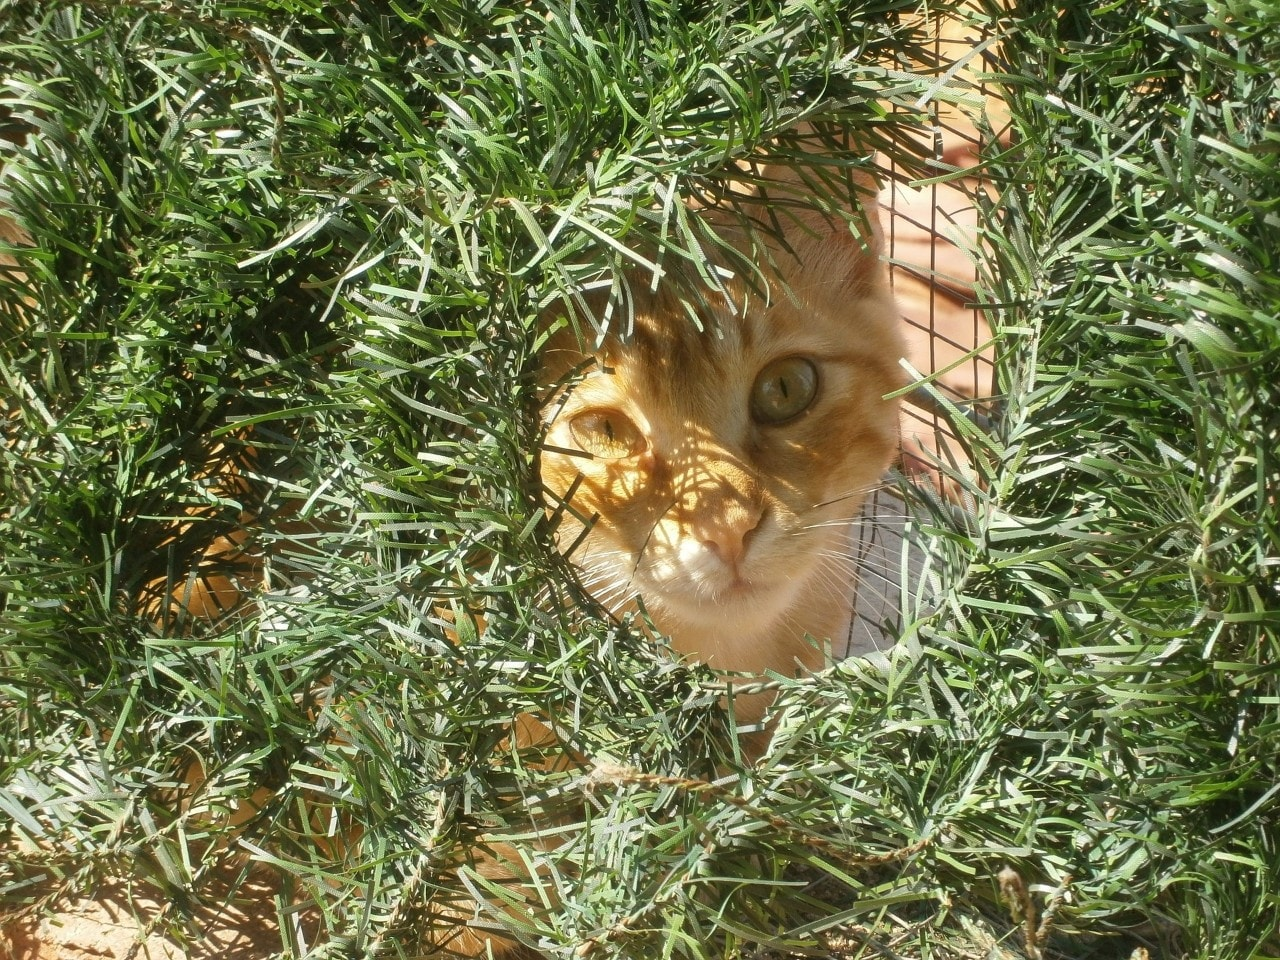 A cat peers out from a shelter, surrounded by grass.